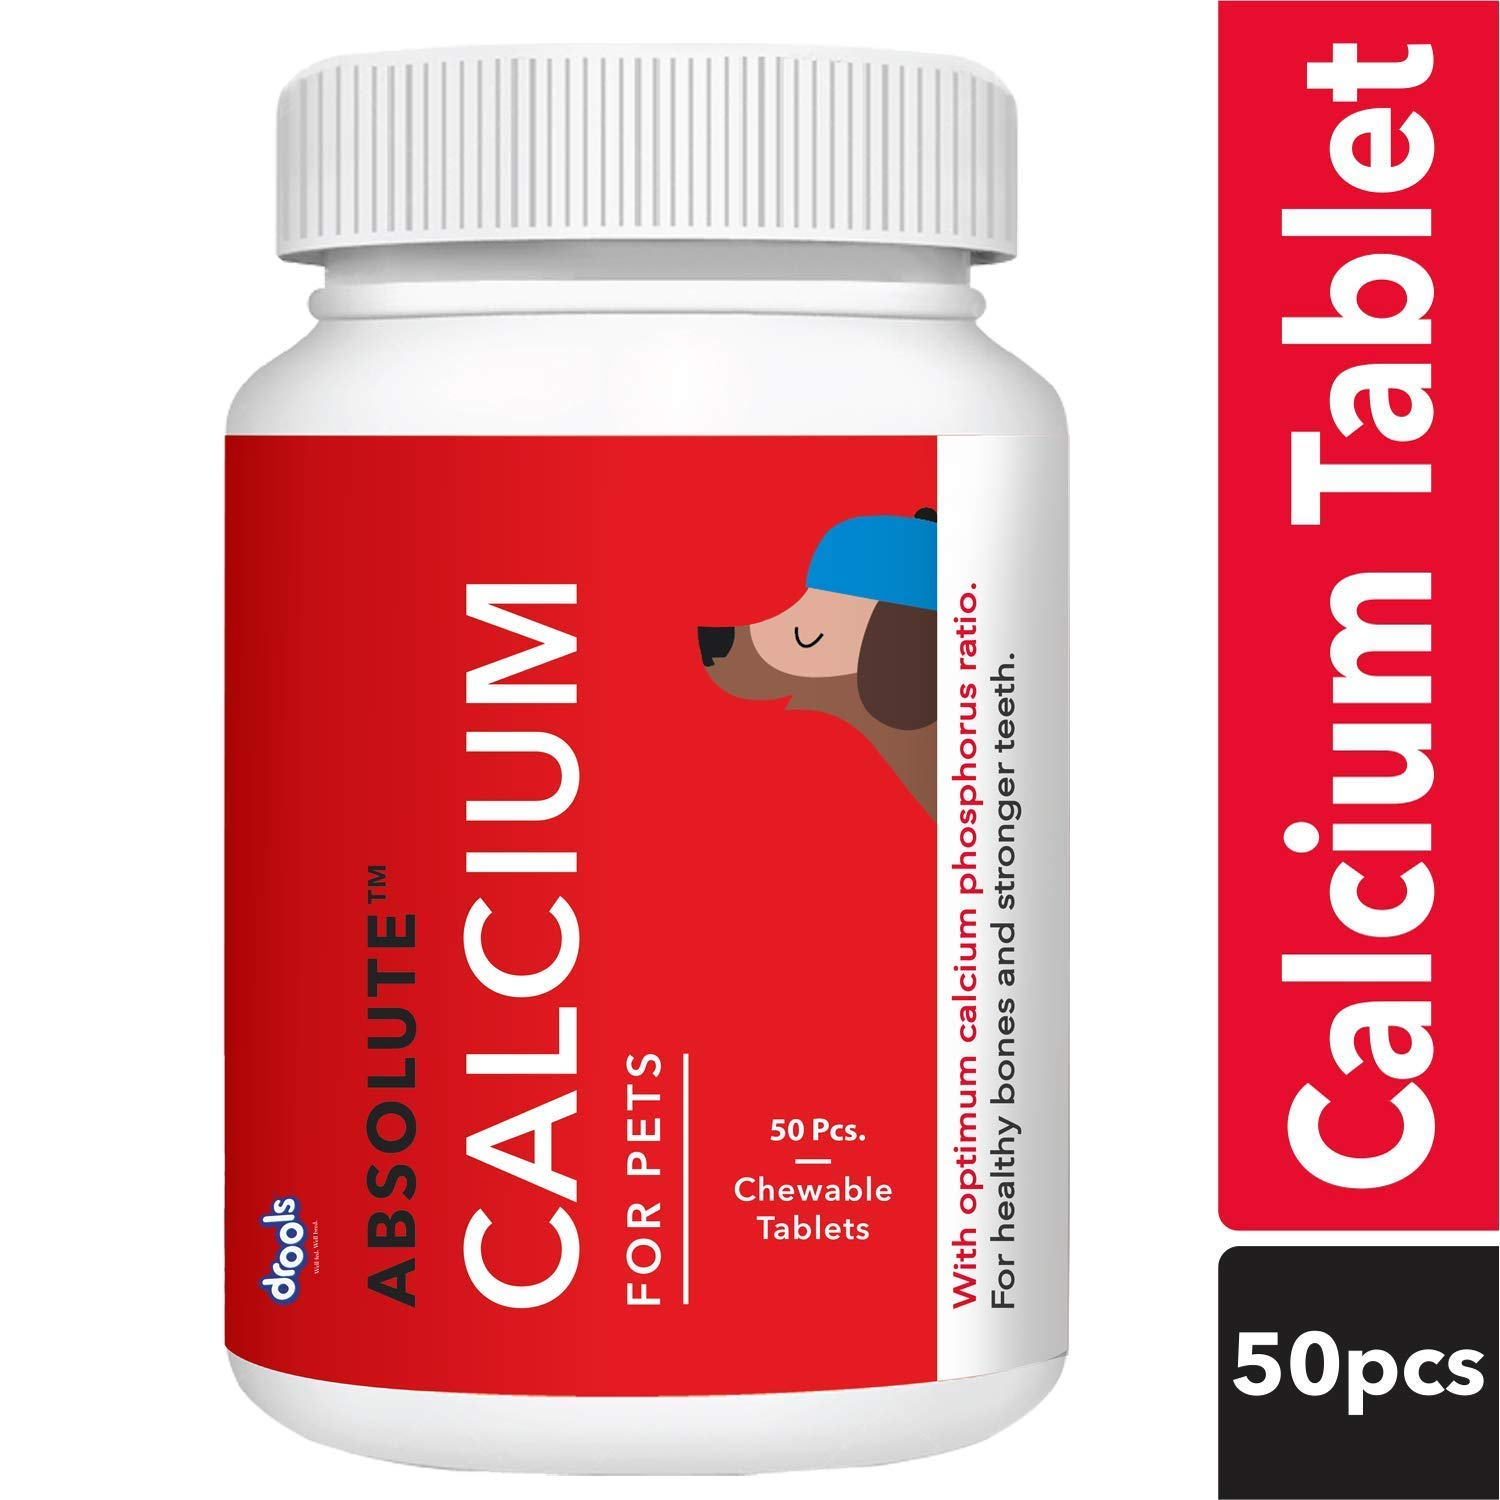 Drools Absolute Calcium Tablet- Dog Supplement, 50 Pieces product image